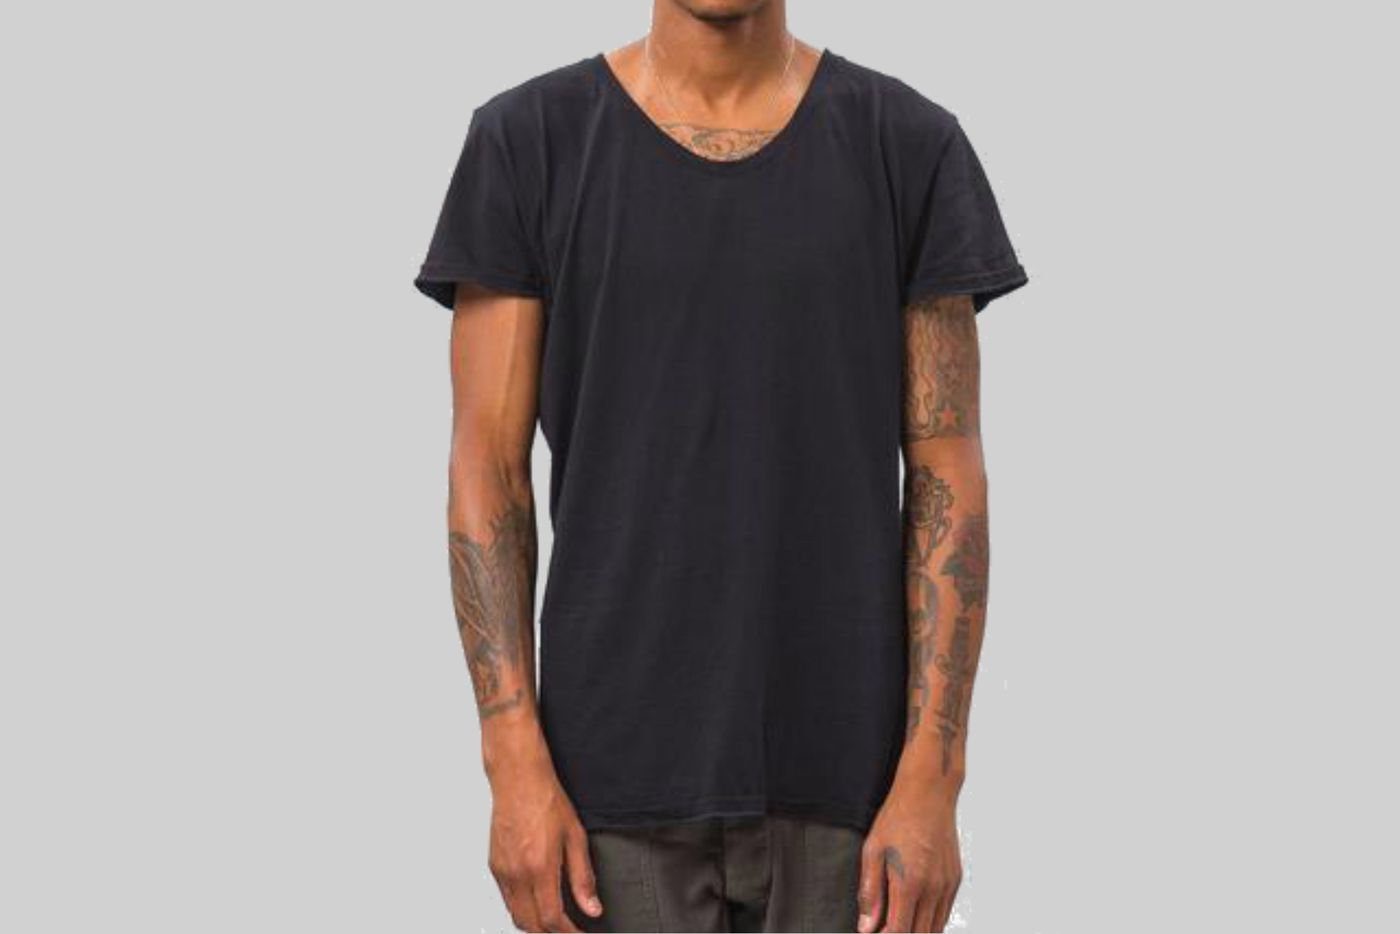 97e74c752110 The Tees to Buy If You're Ready to Upgrade From Hanes - Racked